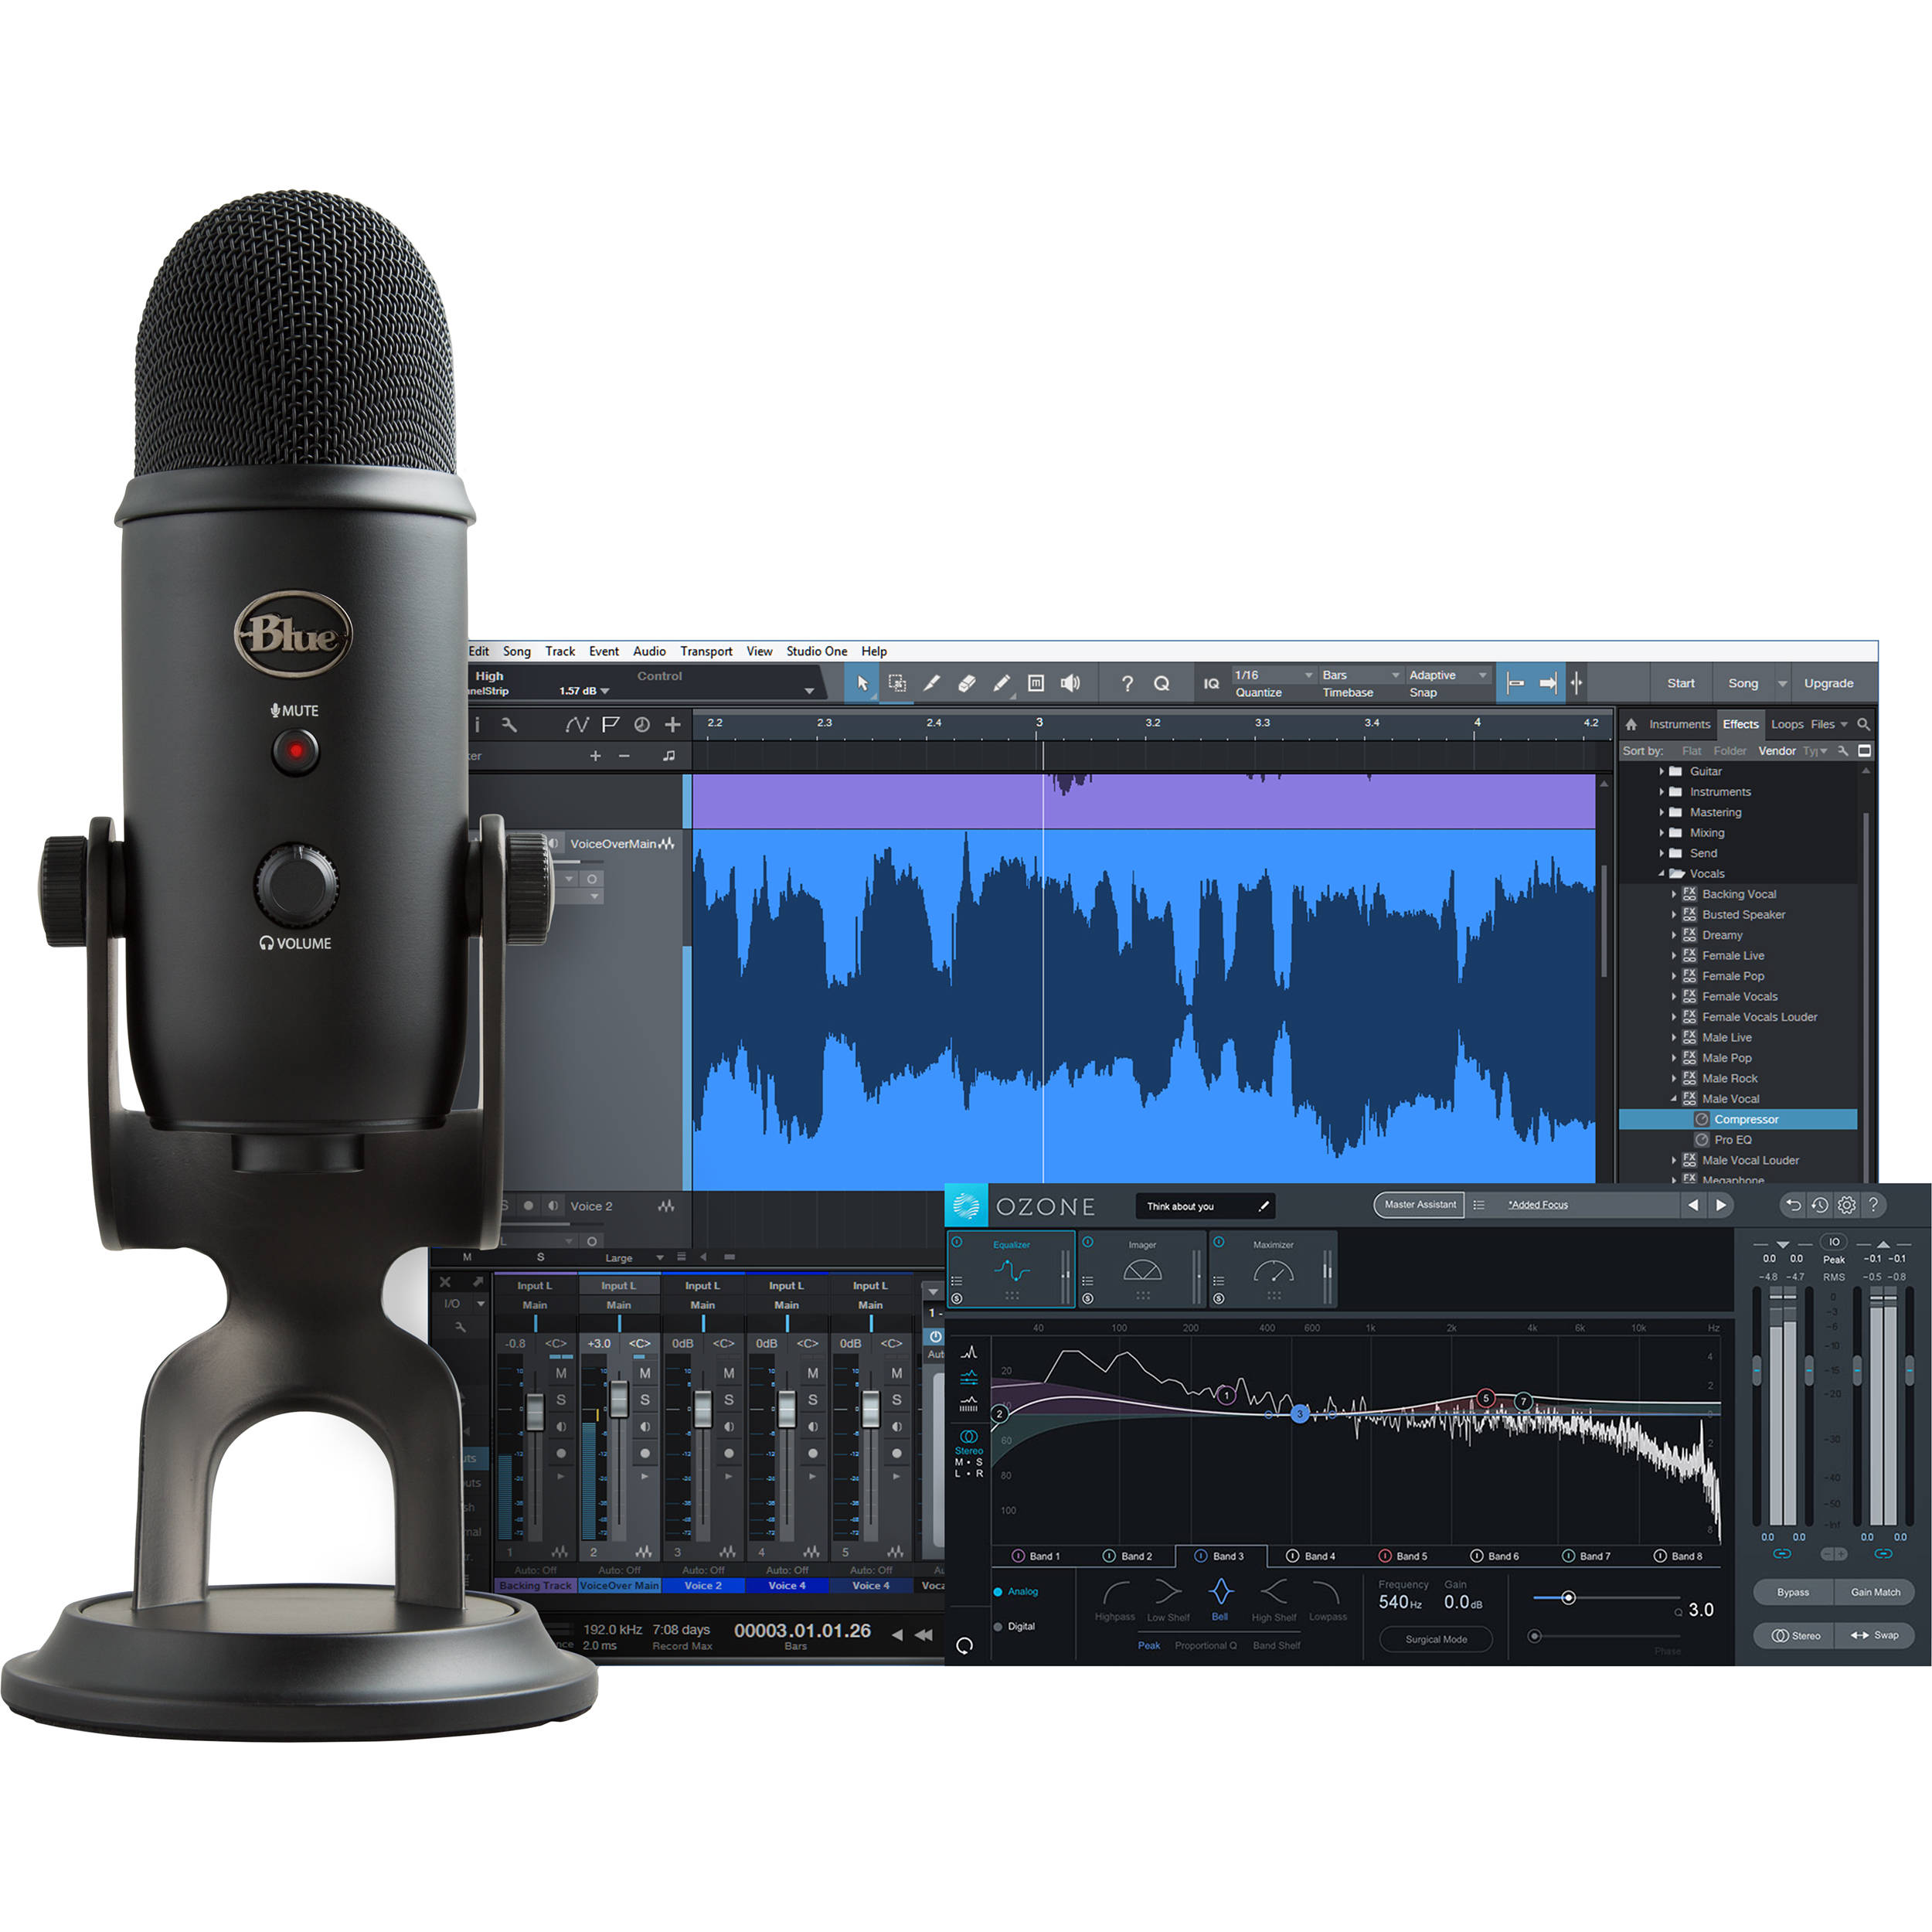 Usb Microphone Effects Software : blue yeti professional recording kit for vocals with usb mic ~ Hamham.info Haus und Dekorationen